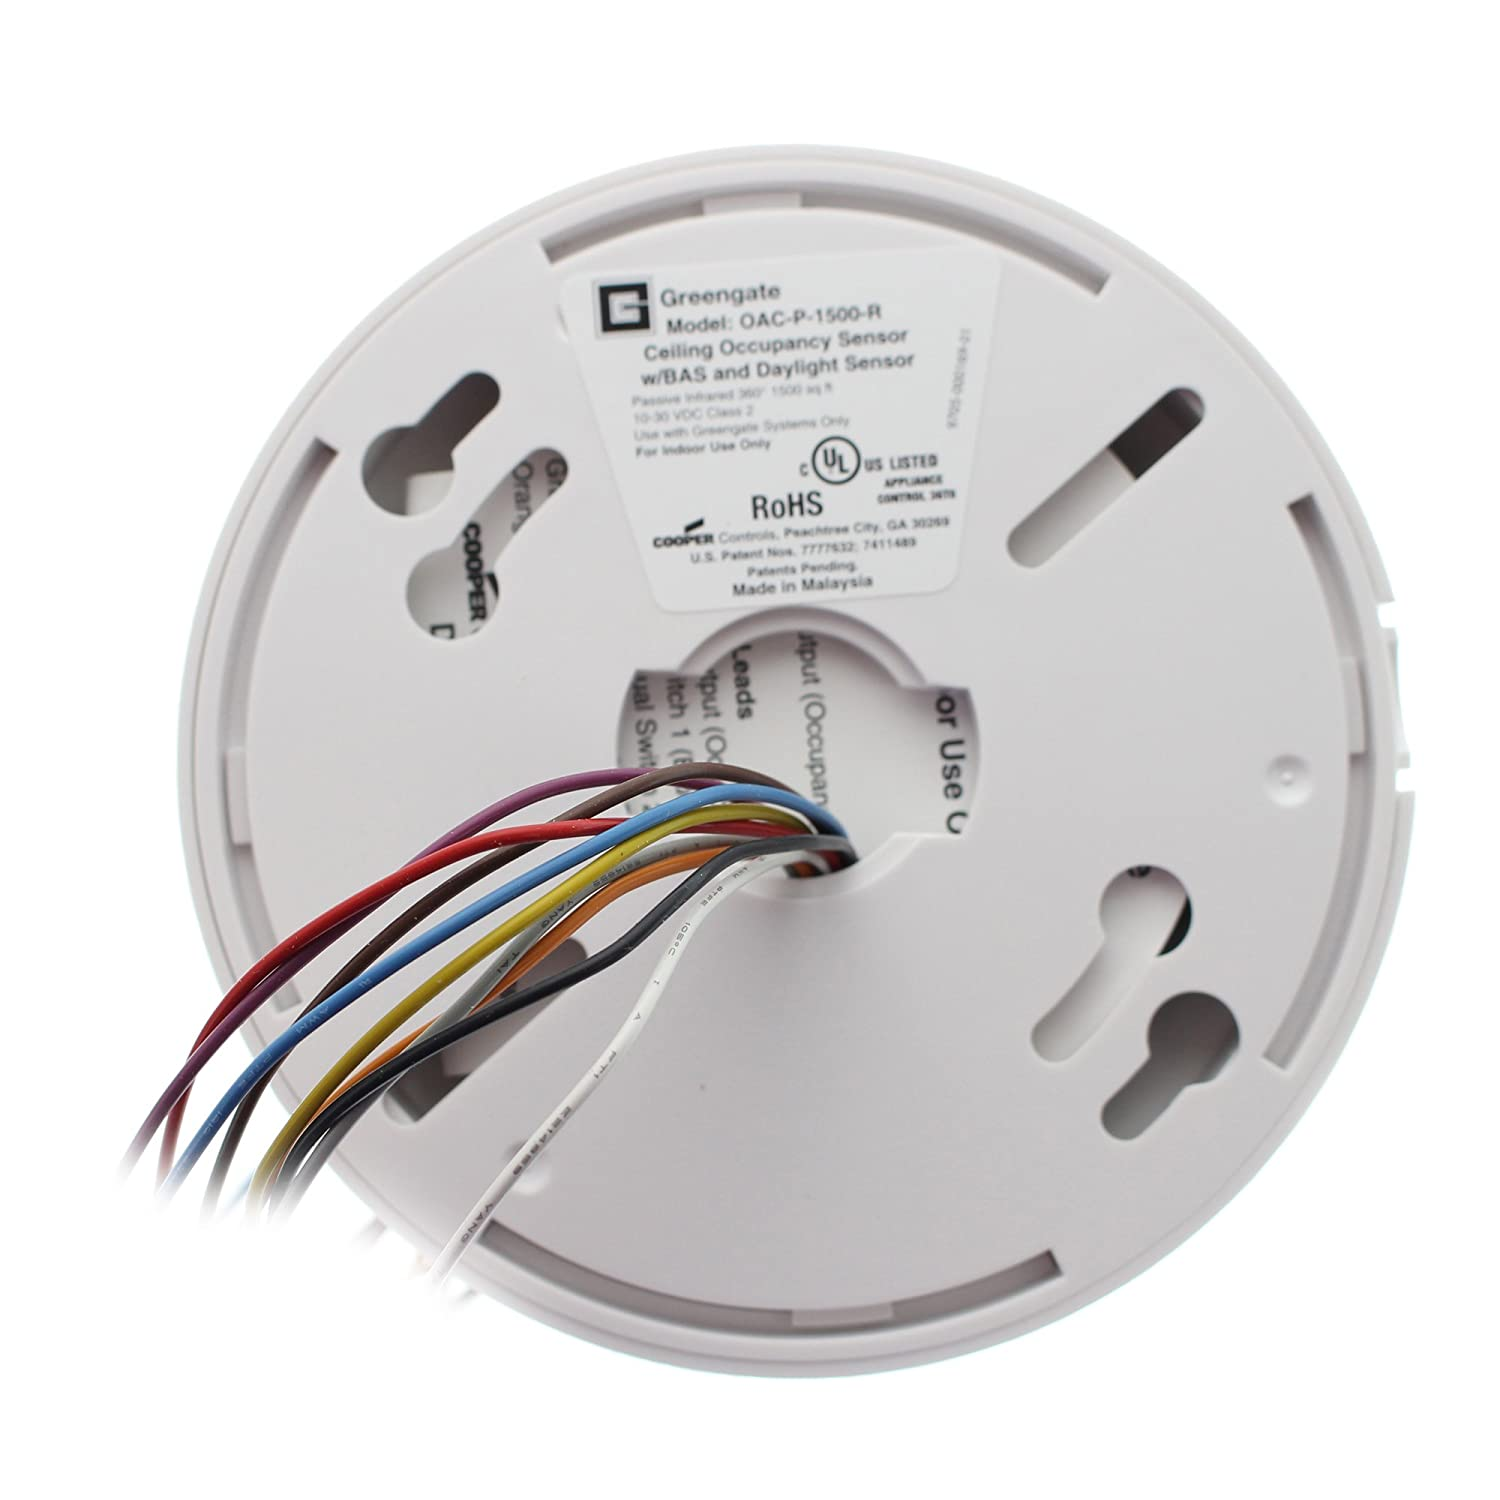 Cooper Controls OAC-P-1500-R MicroSet Ceiling Sensor with BAS and Daylight Sensor, Passive Infrared, 360 Degree, 1500 Square Feet, 10-30 VDC, ...